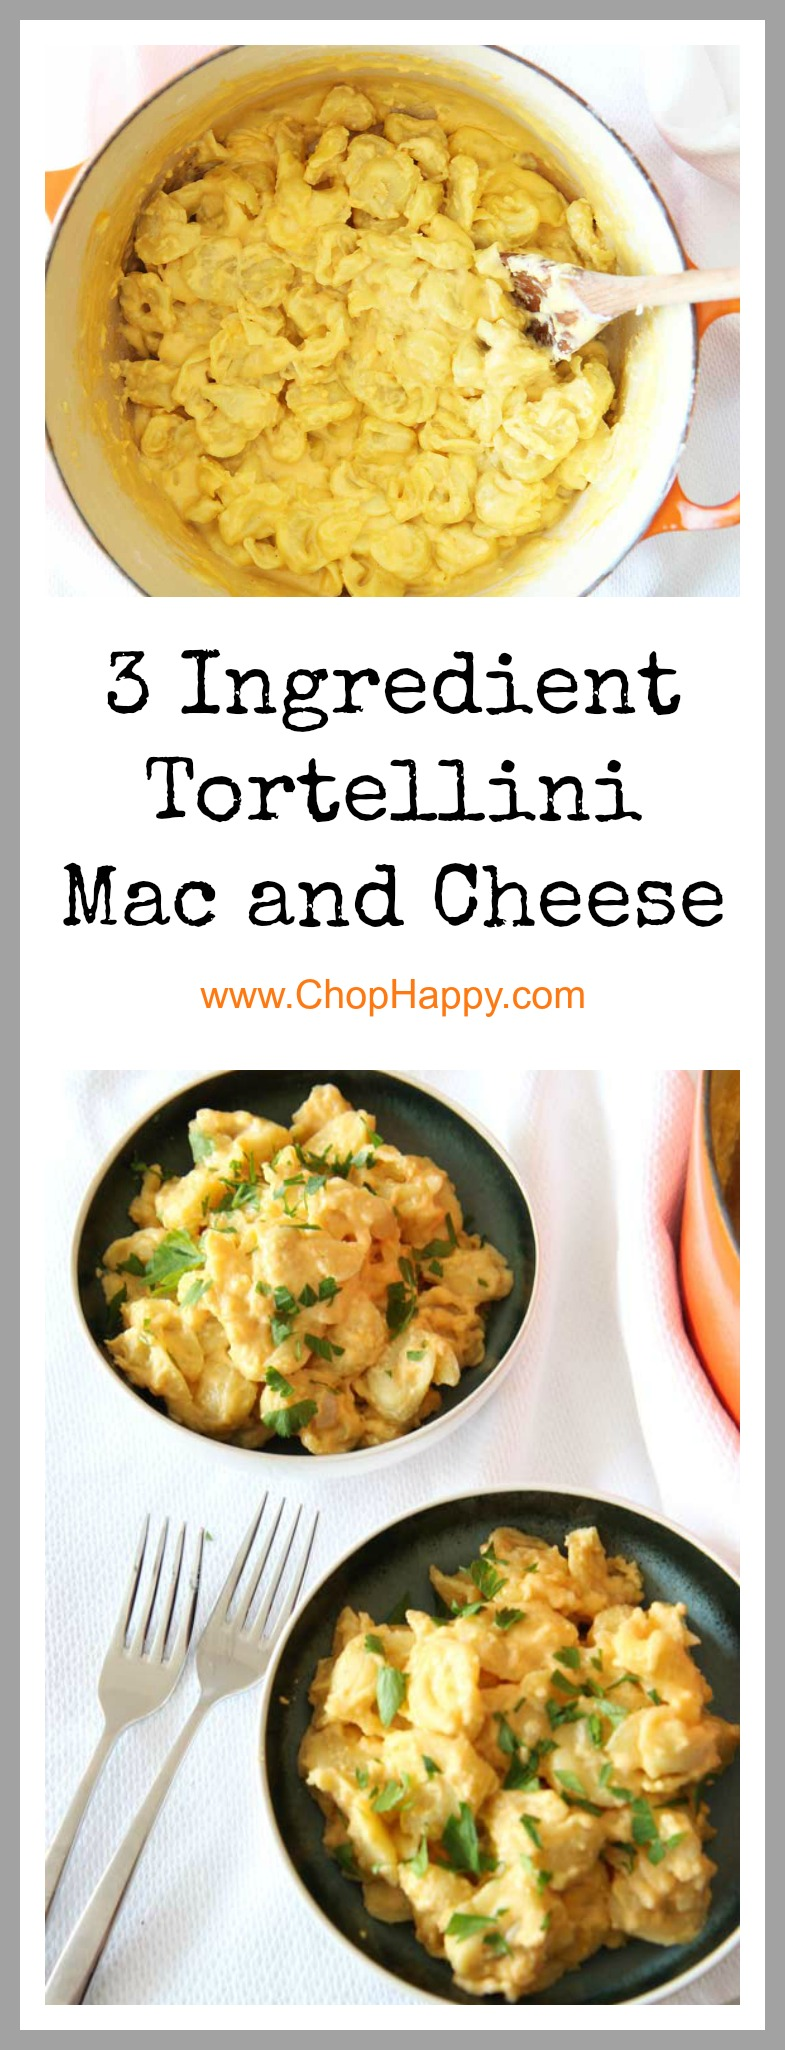 3 Ingredient Tortellini Mac and Cheese Recipe - that is stick to your ribs comfort food awesome. This is a recipe hack that is dinner time quick. Grab your milk, cheese, and pasta to make this. www.ChopHappy.com #MacandCheese #comfortfoodrecipe